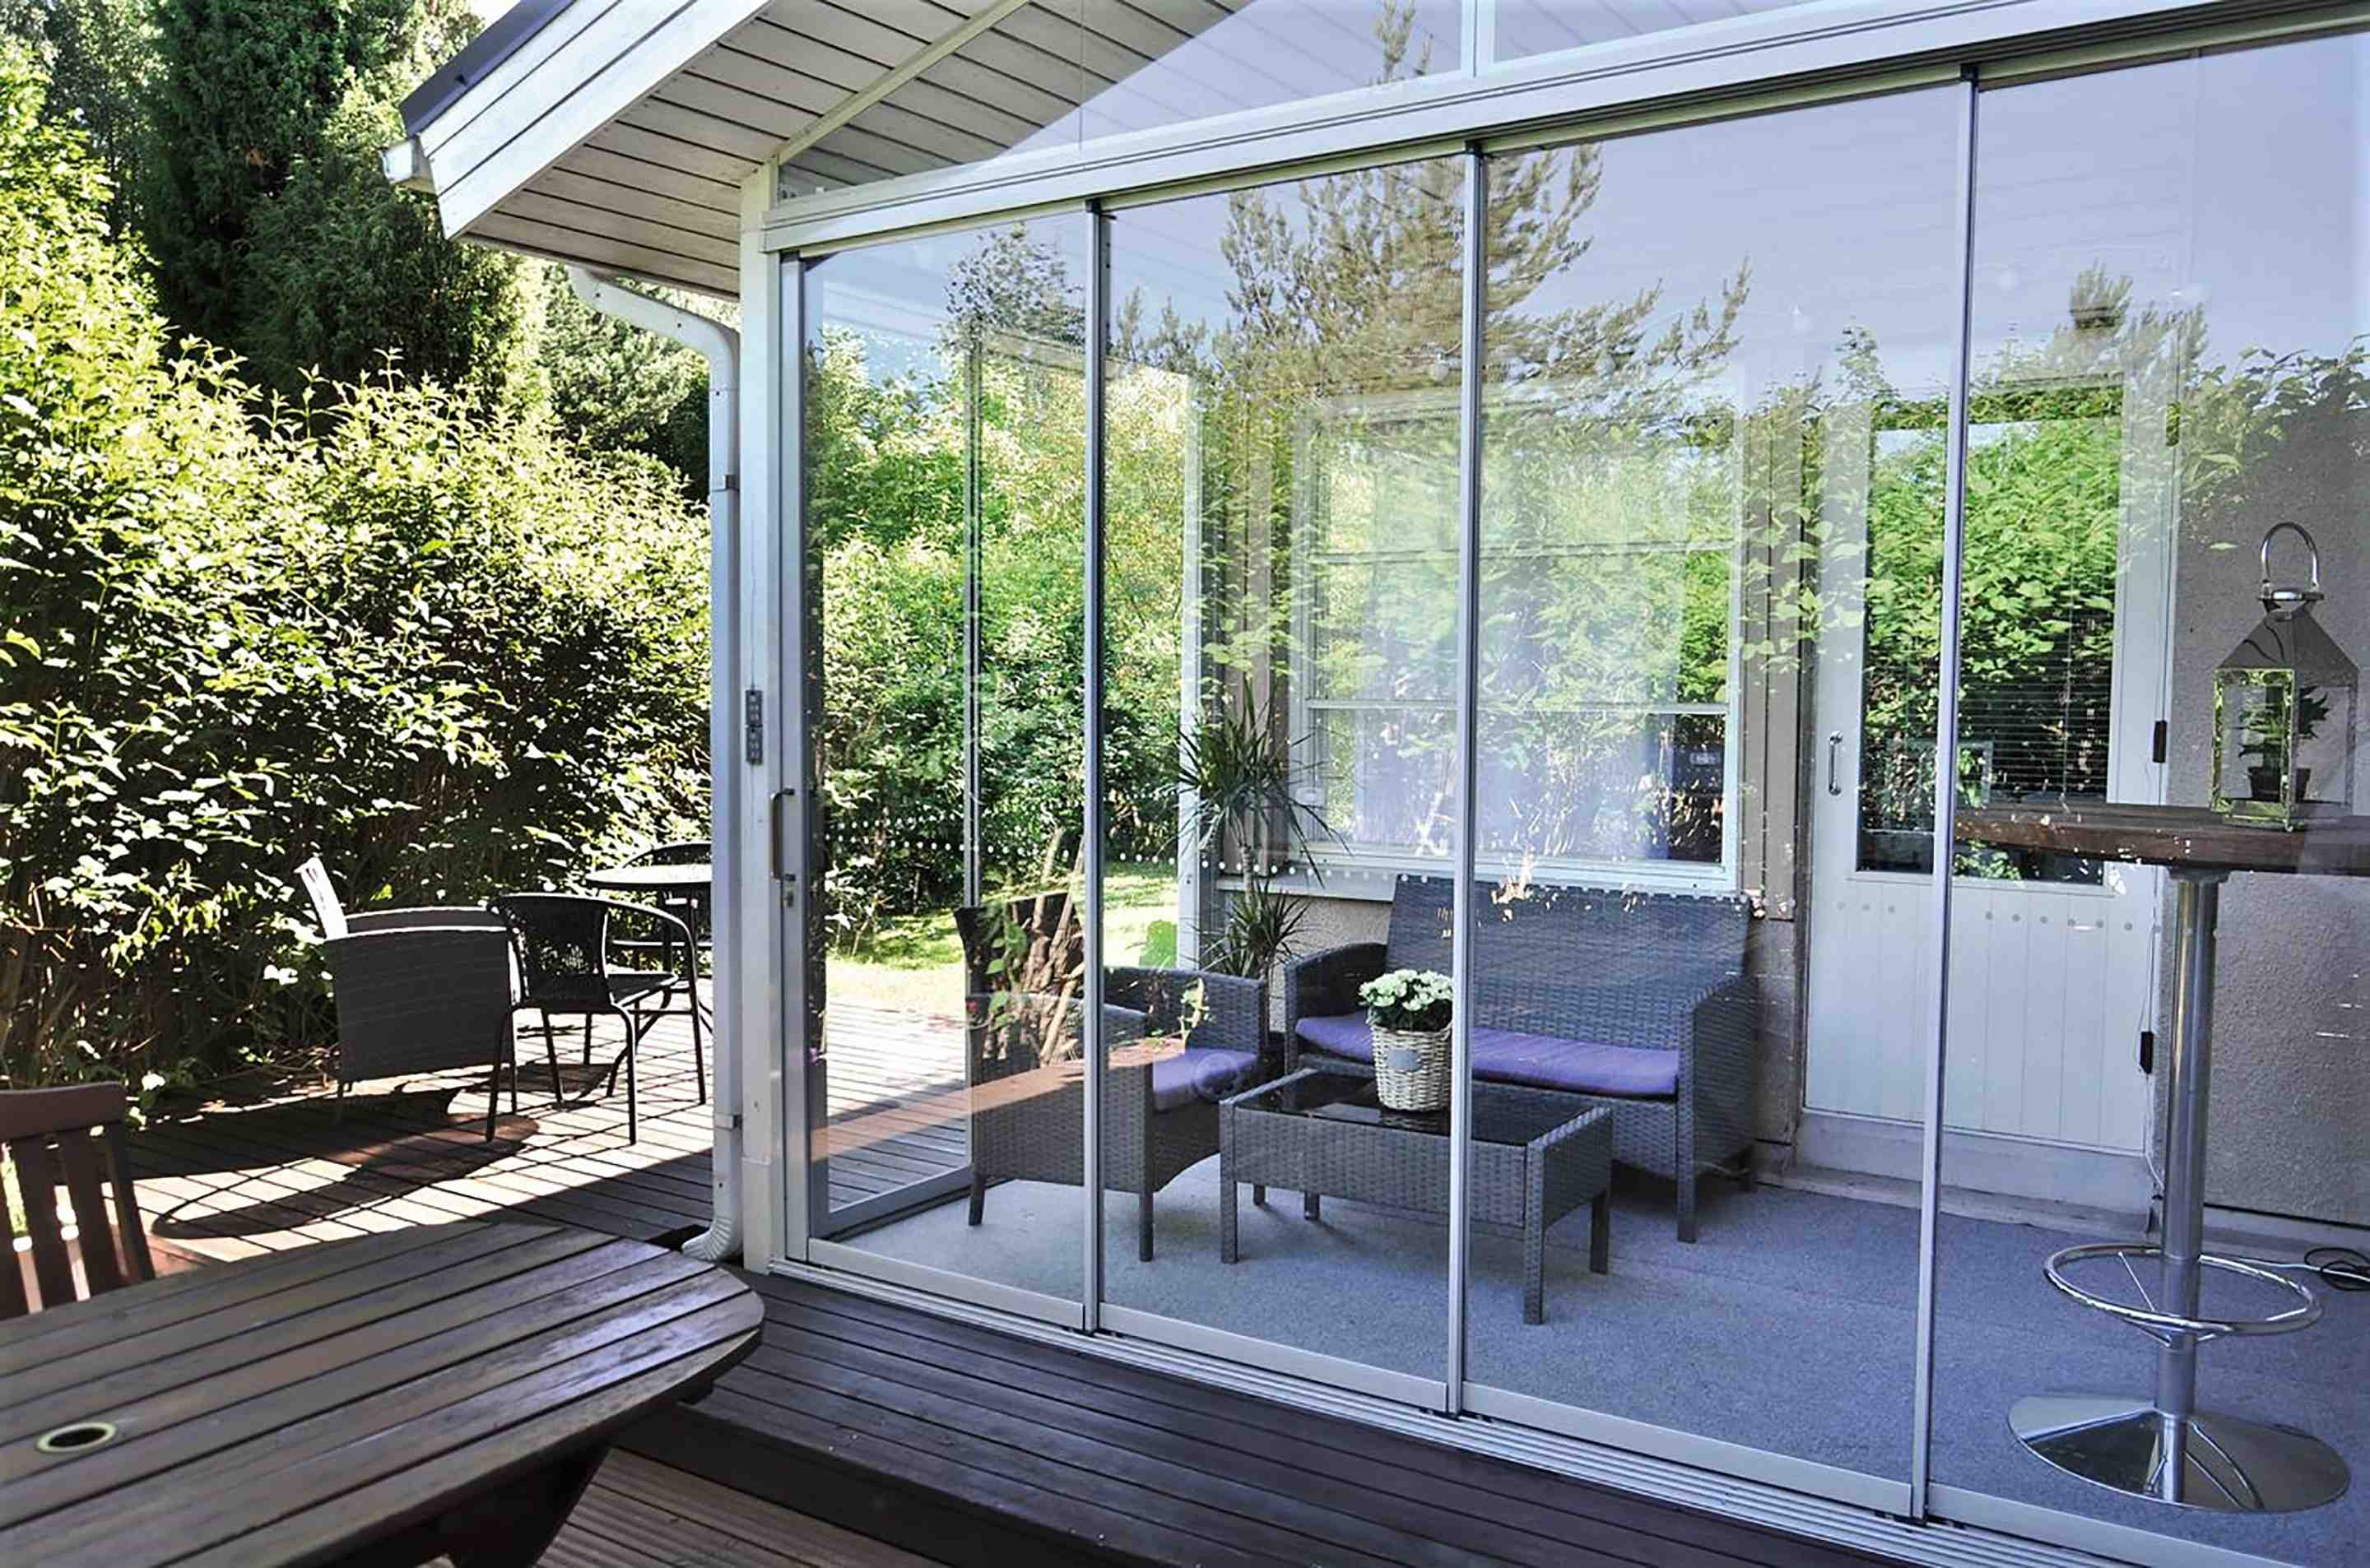 glass sunroom, glass porch enclosures, lifestyle sunrooms, lifestyle sunroom reviews, moveable patio walls, glass walls, sunroom ideas, porch enclosures, sun room , sun room extension, sunrooms